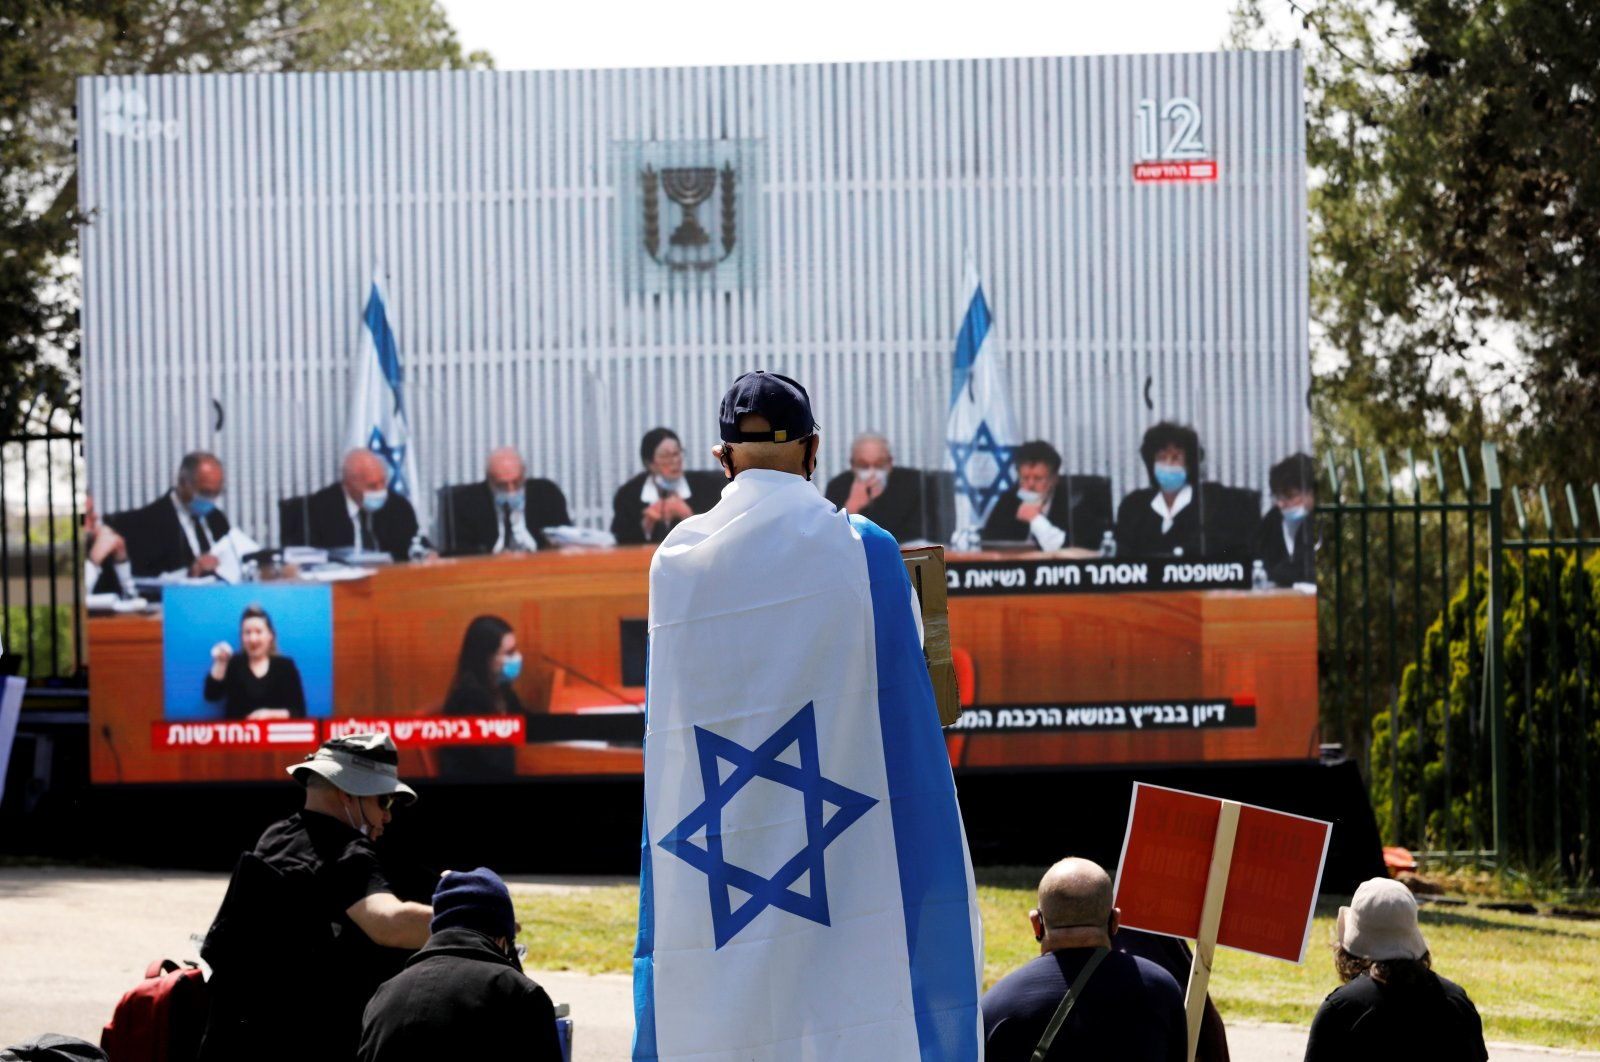 Israelis protest, in front of a placard with the photo of the High Court judges outside the Knesset against Prime minister Benjamin Netanyahu in Jerusalem, May 3, 2020. (Reuters Photo)